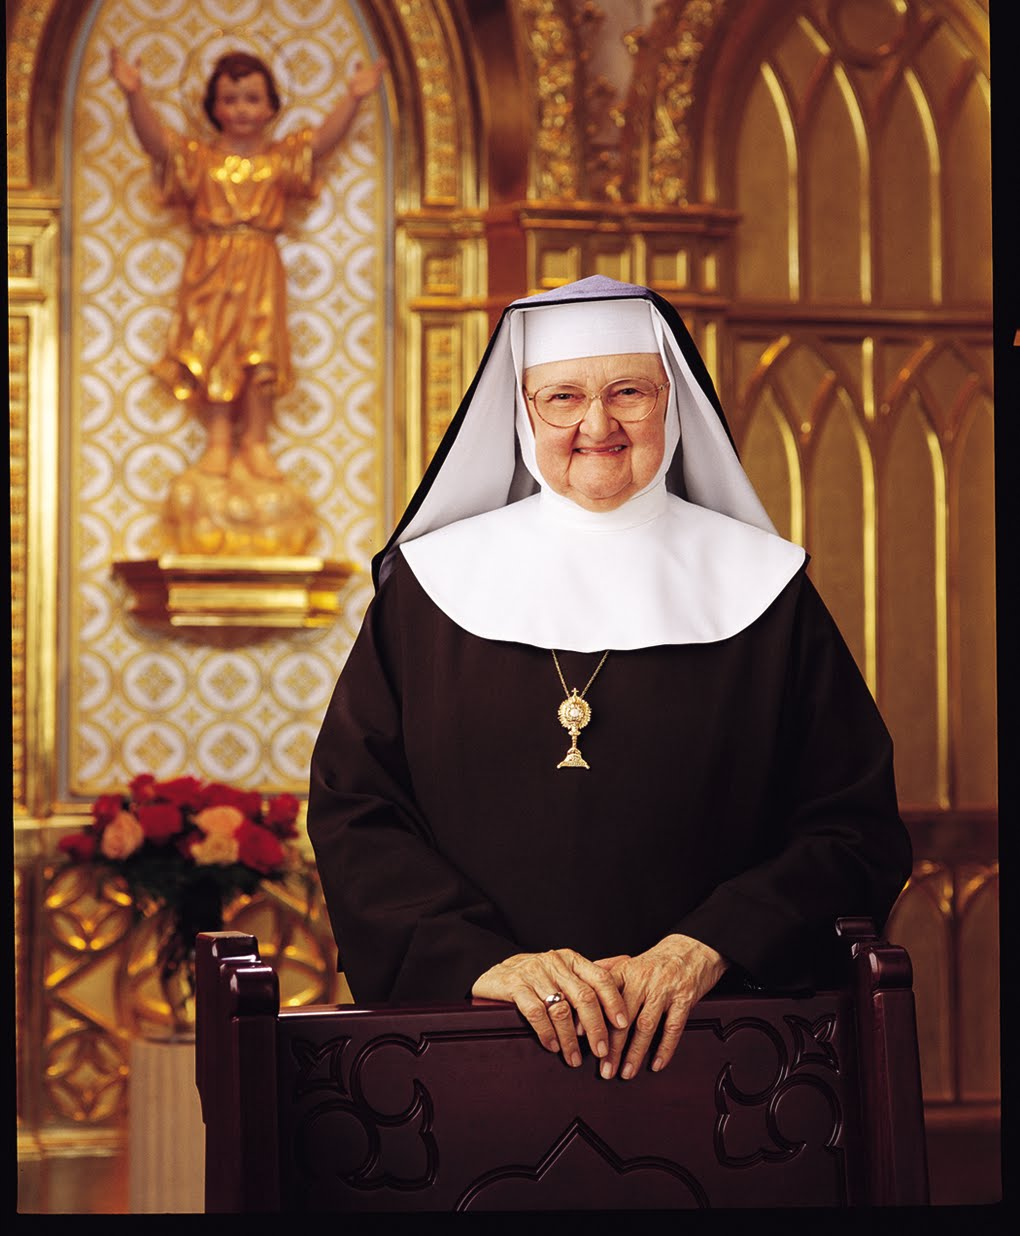 Foundress of EWTN